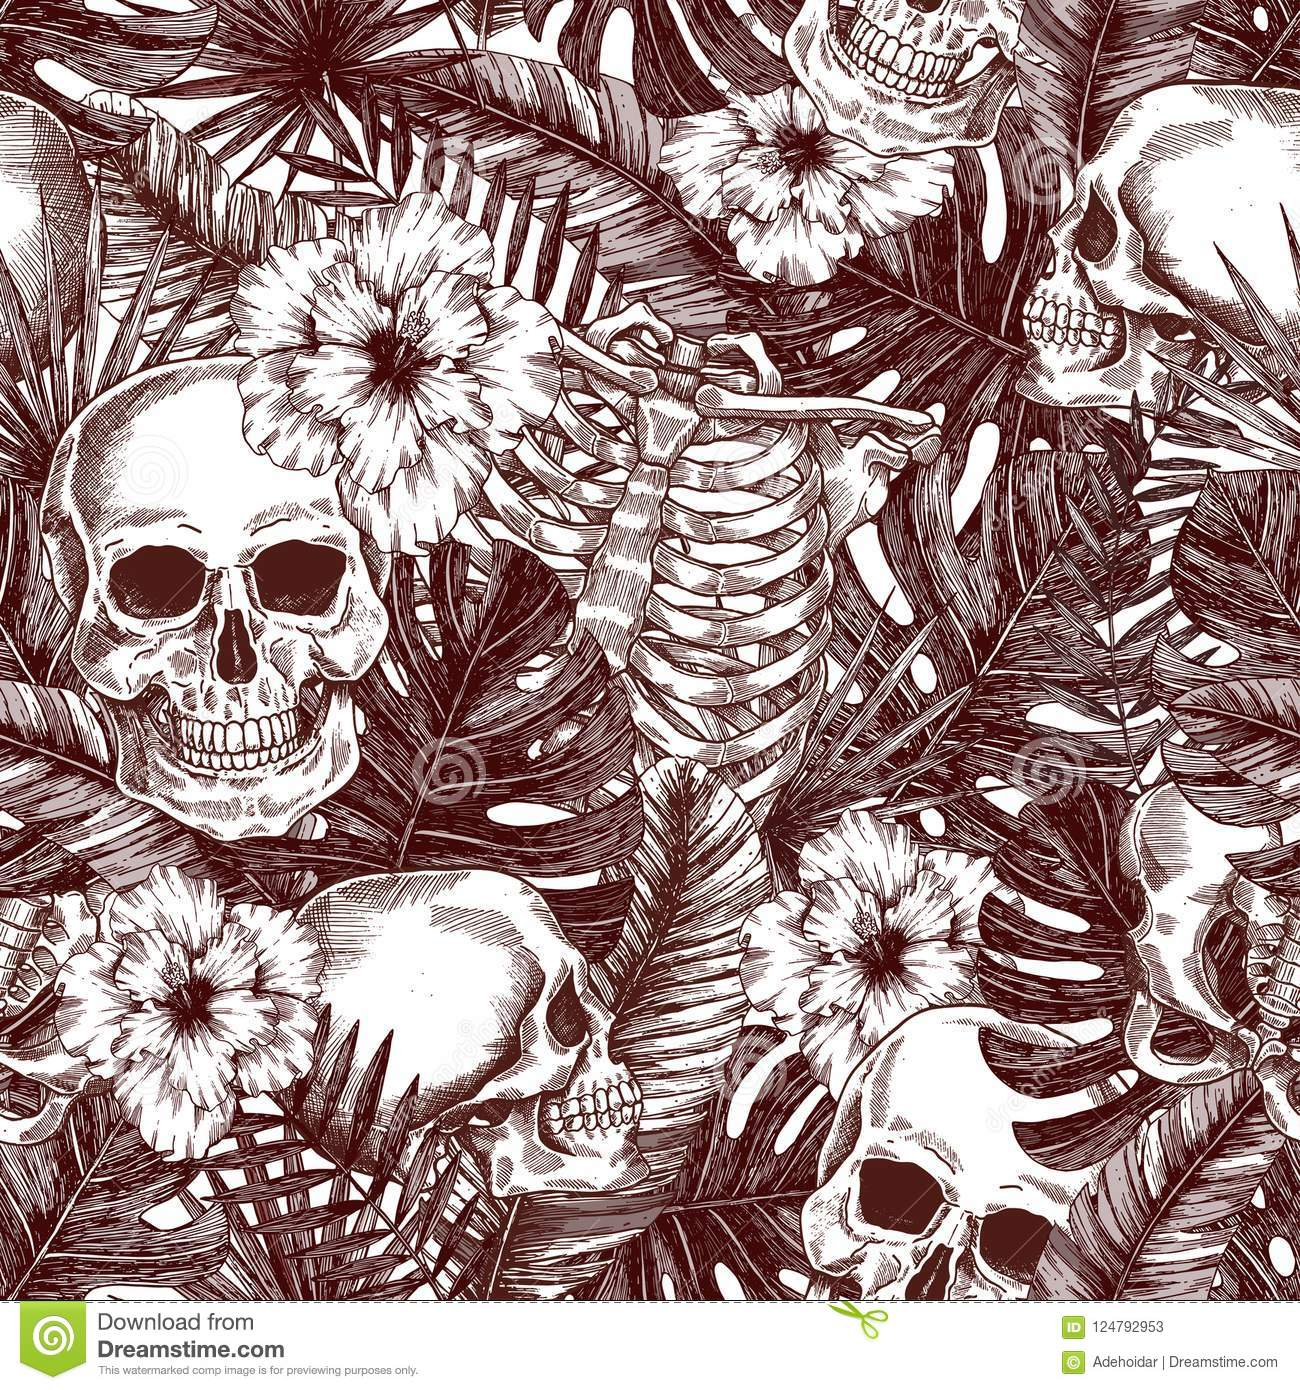 Floral anatomy. Halloween tropical vintage seamless pattern. Creppy jungle skull background.